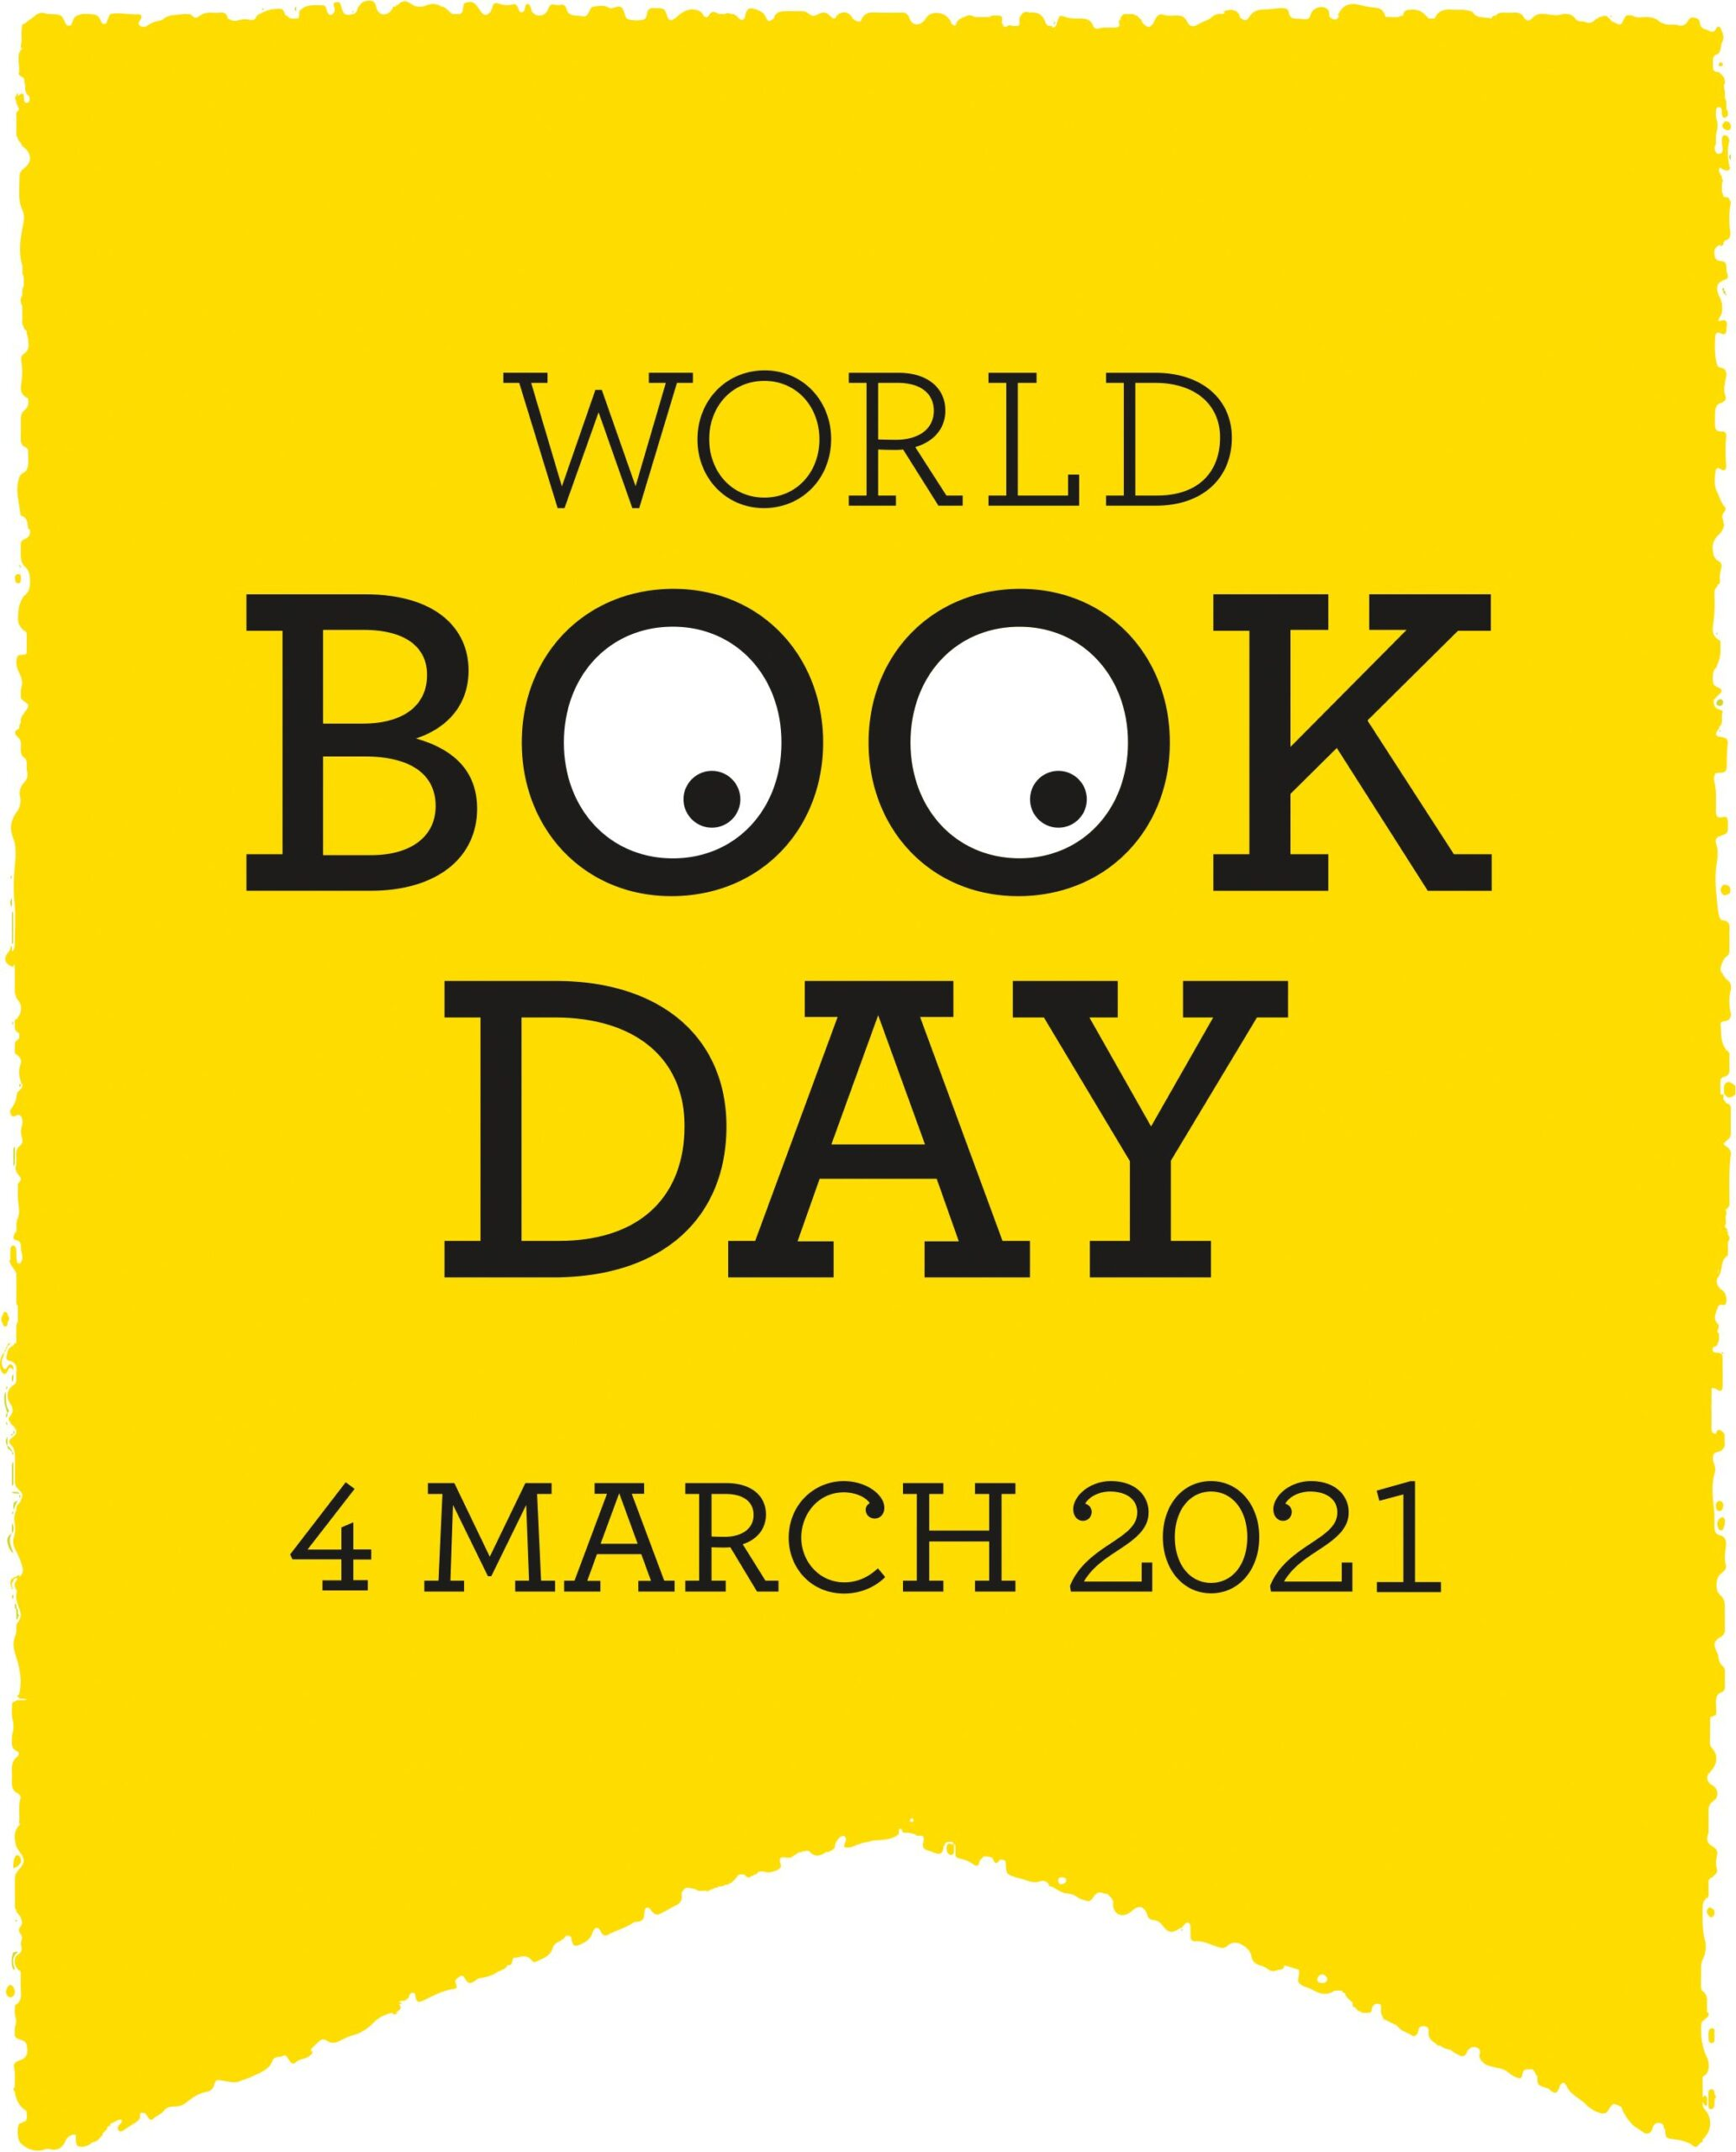 World Book Day 2021 logo